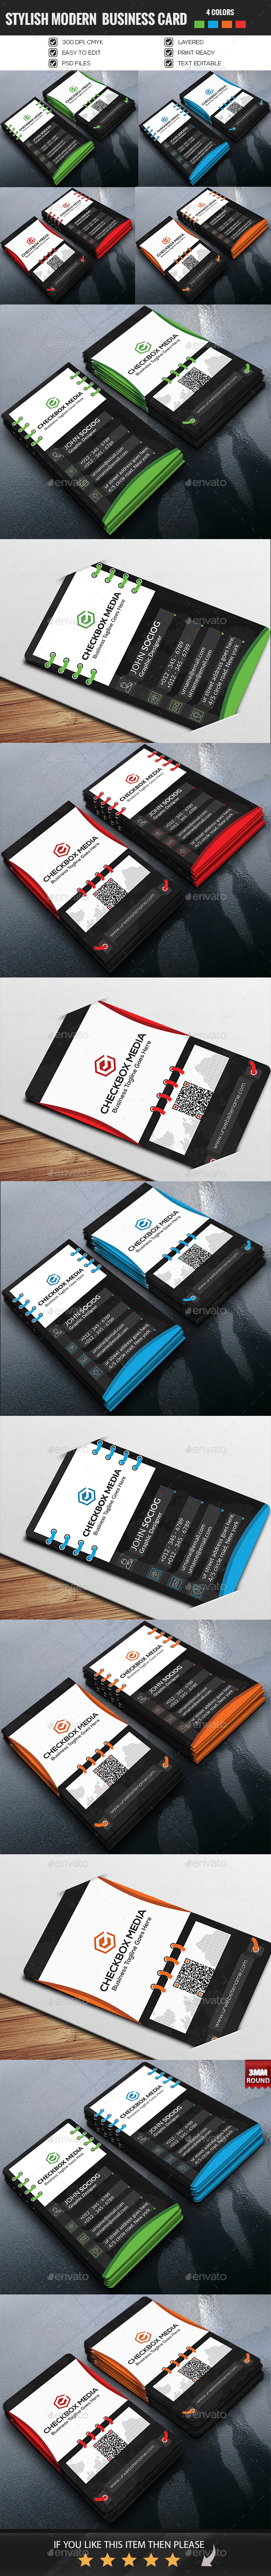 Stylish Modern Business Card Vertical Version-02 - Business Cards Print Templates